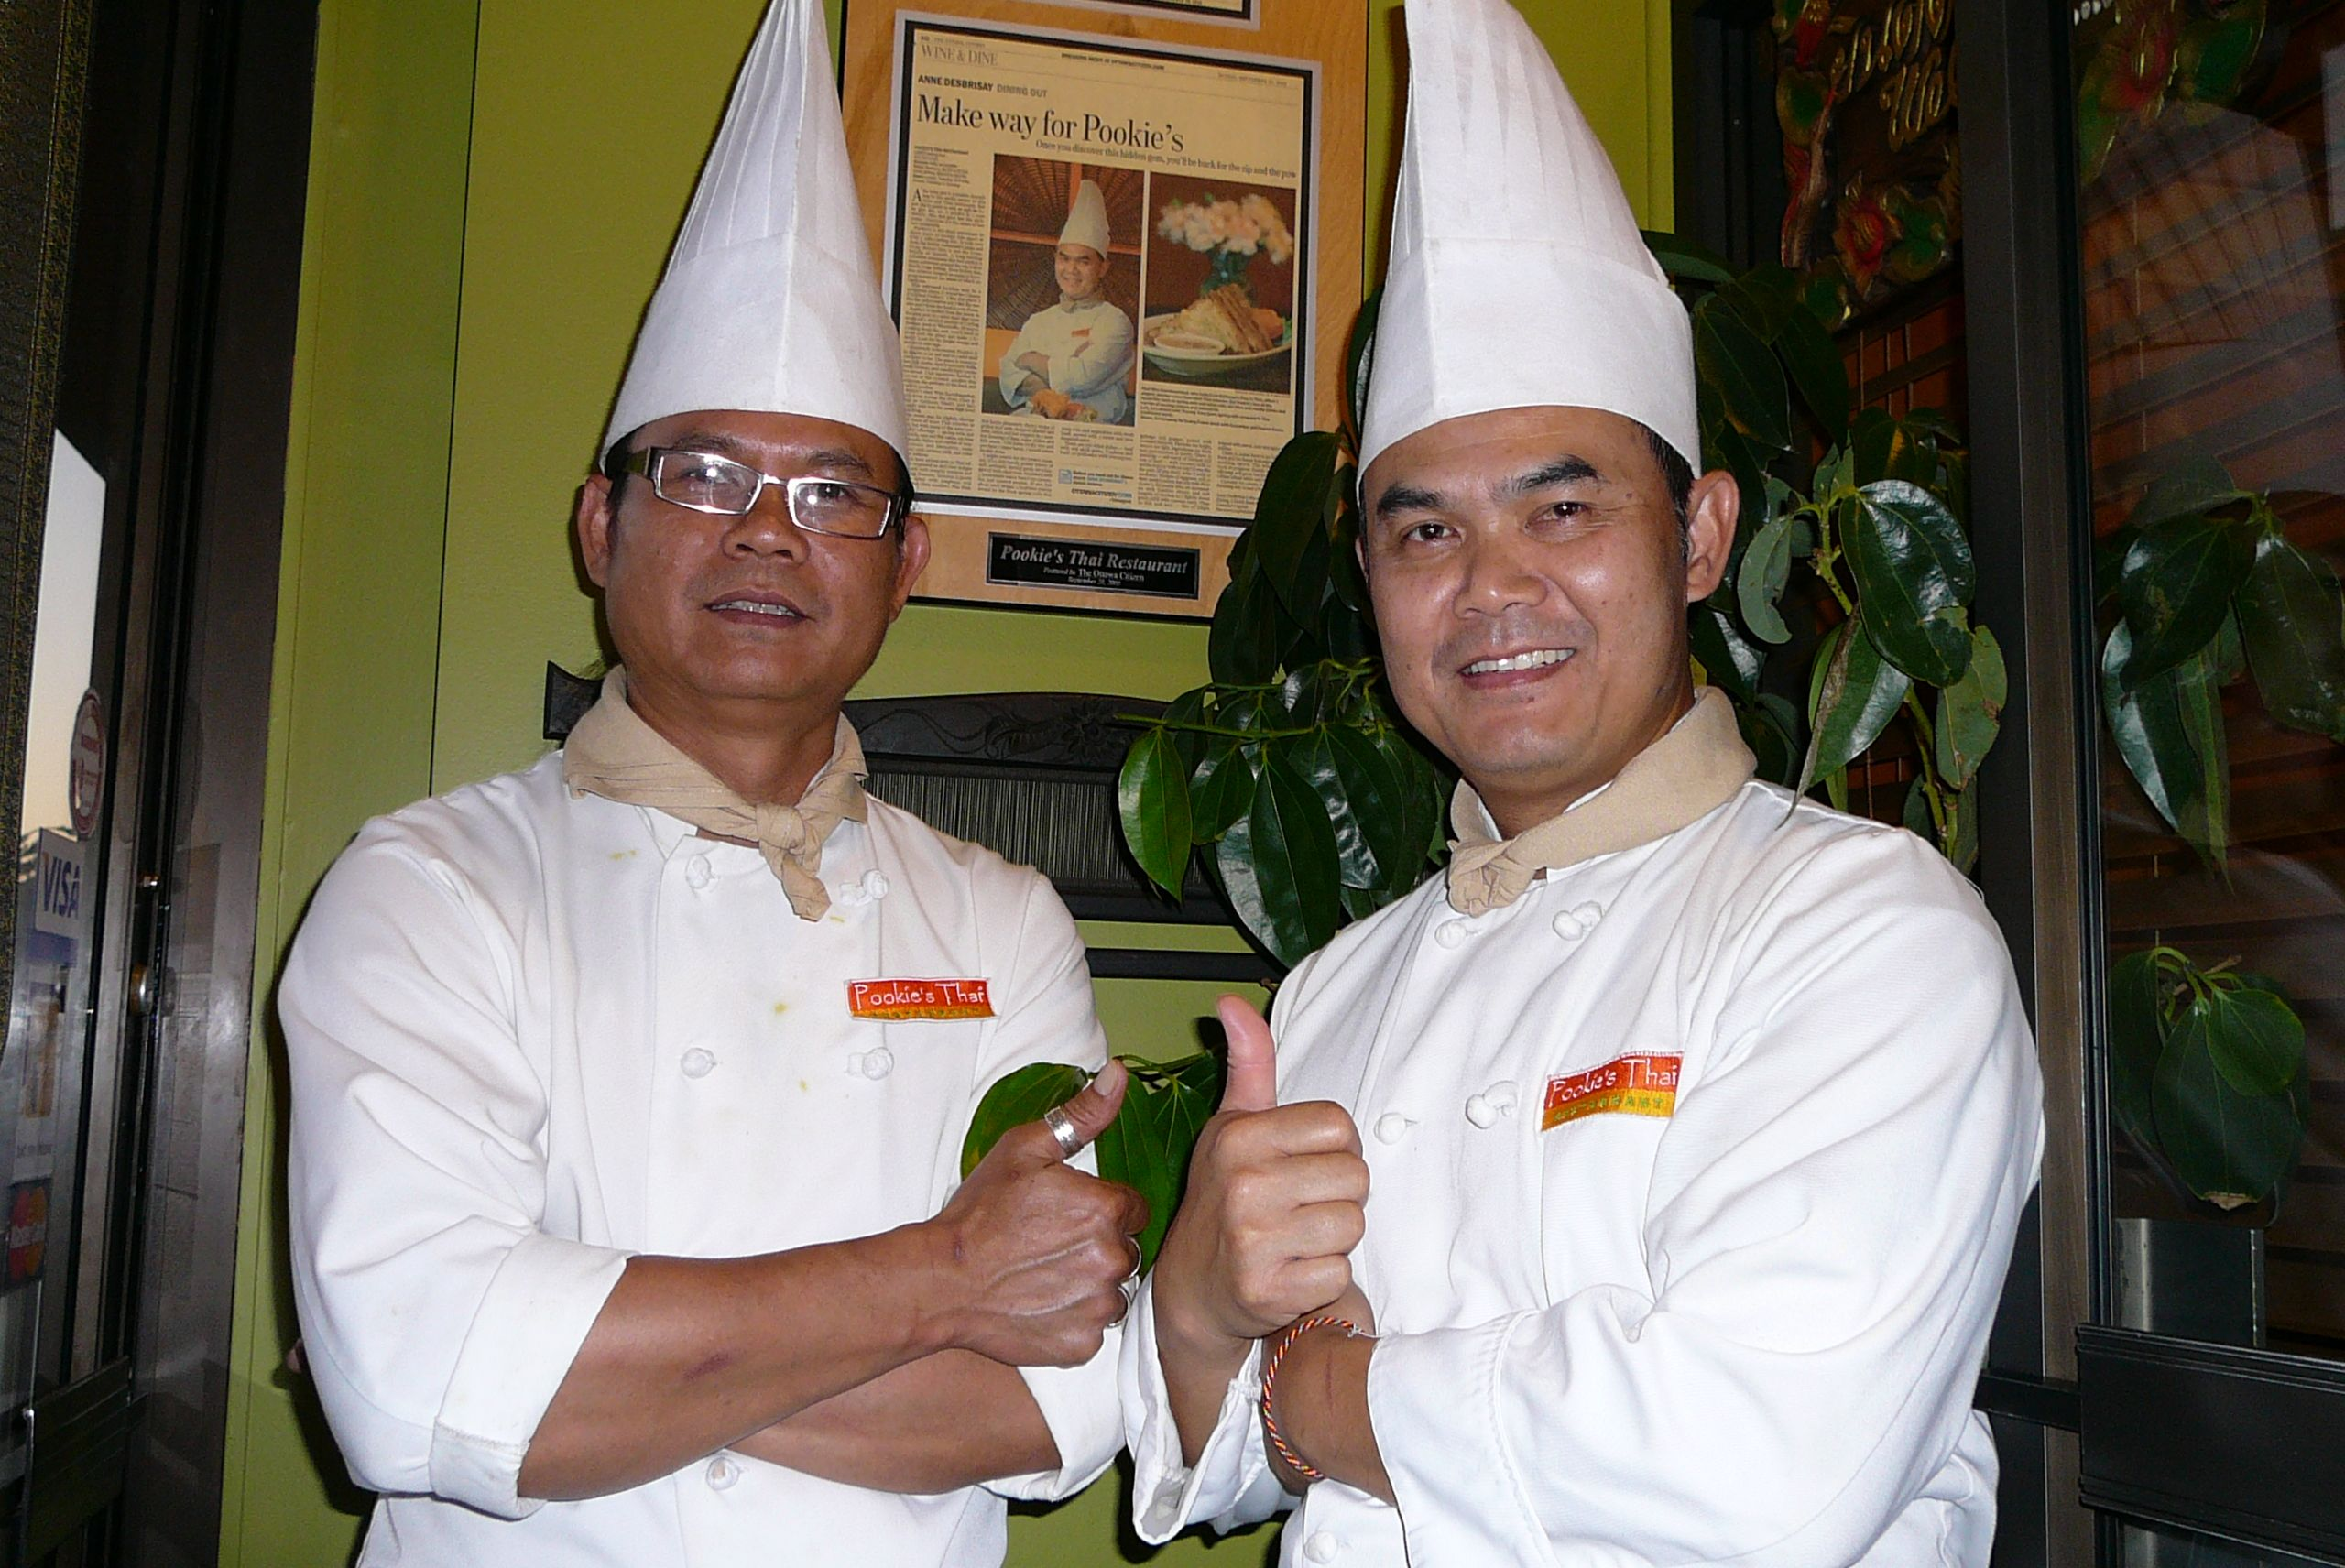 Our chefs Khun Wan and Khun Tuan